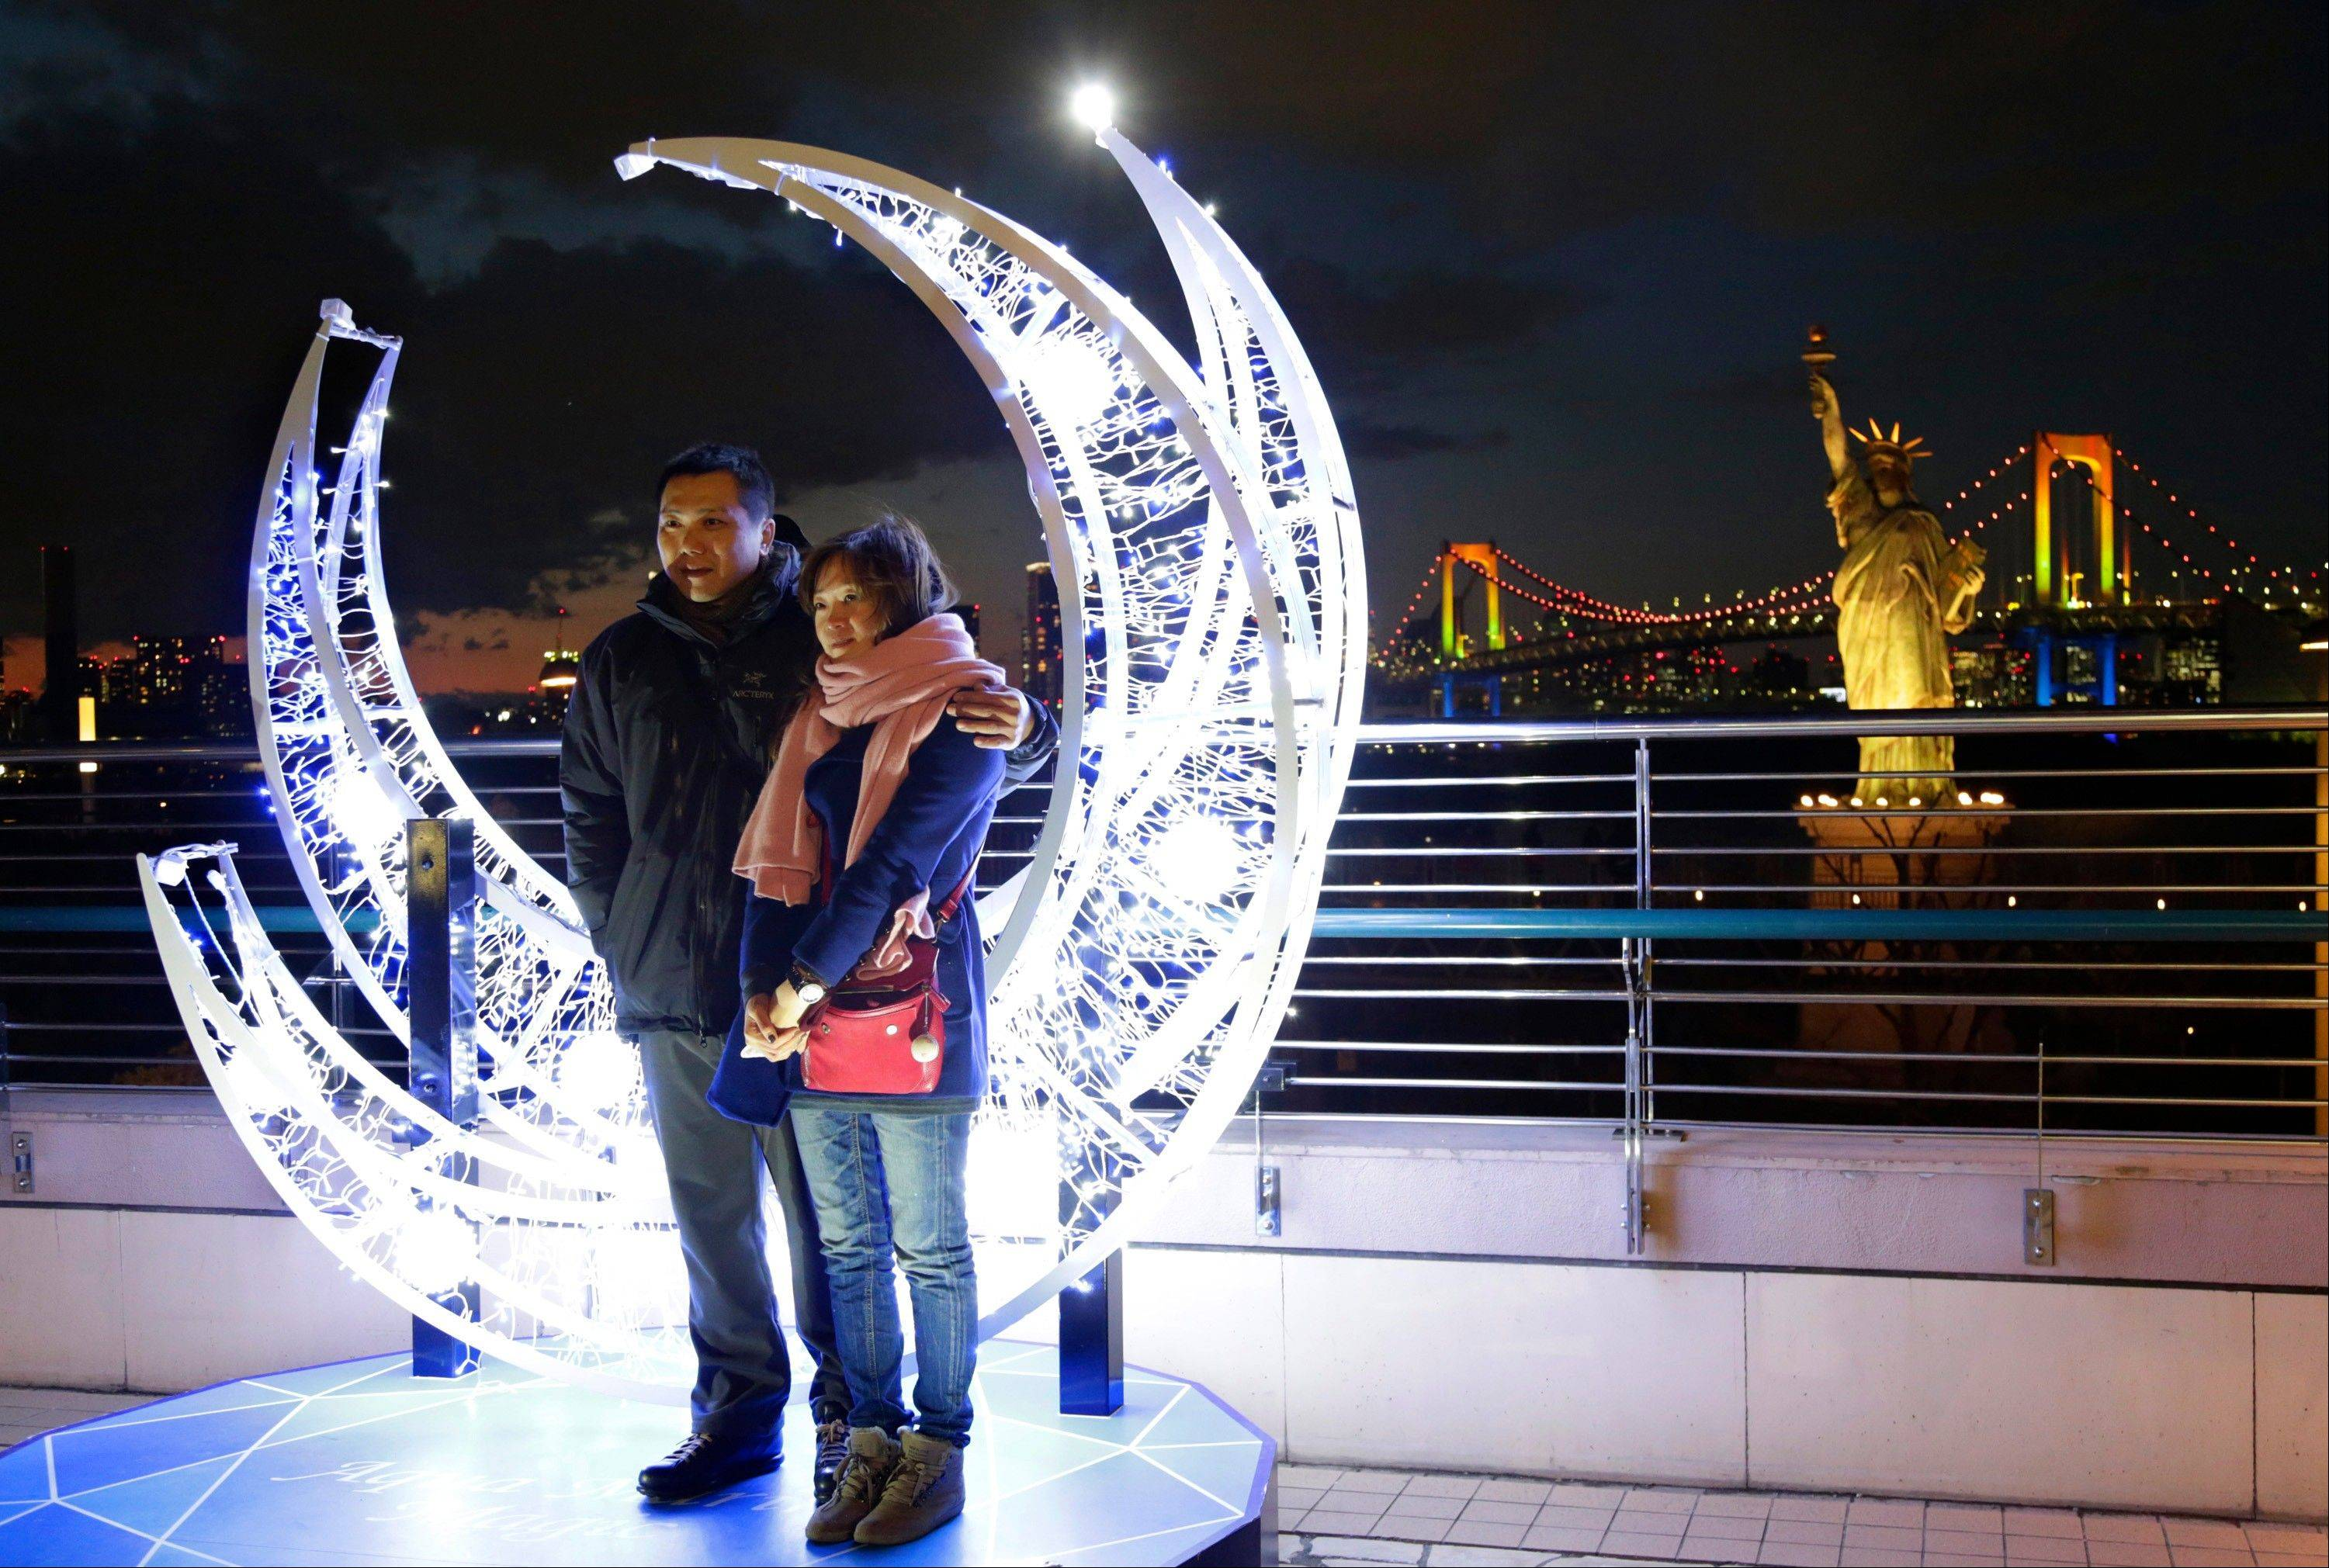 A couple poses in front of the Christmas illuminations for souvenir photos at Tokyo's Daiba bay area, Tuesday, Dec. 24, 2013.